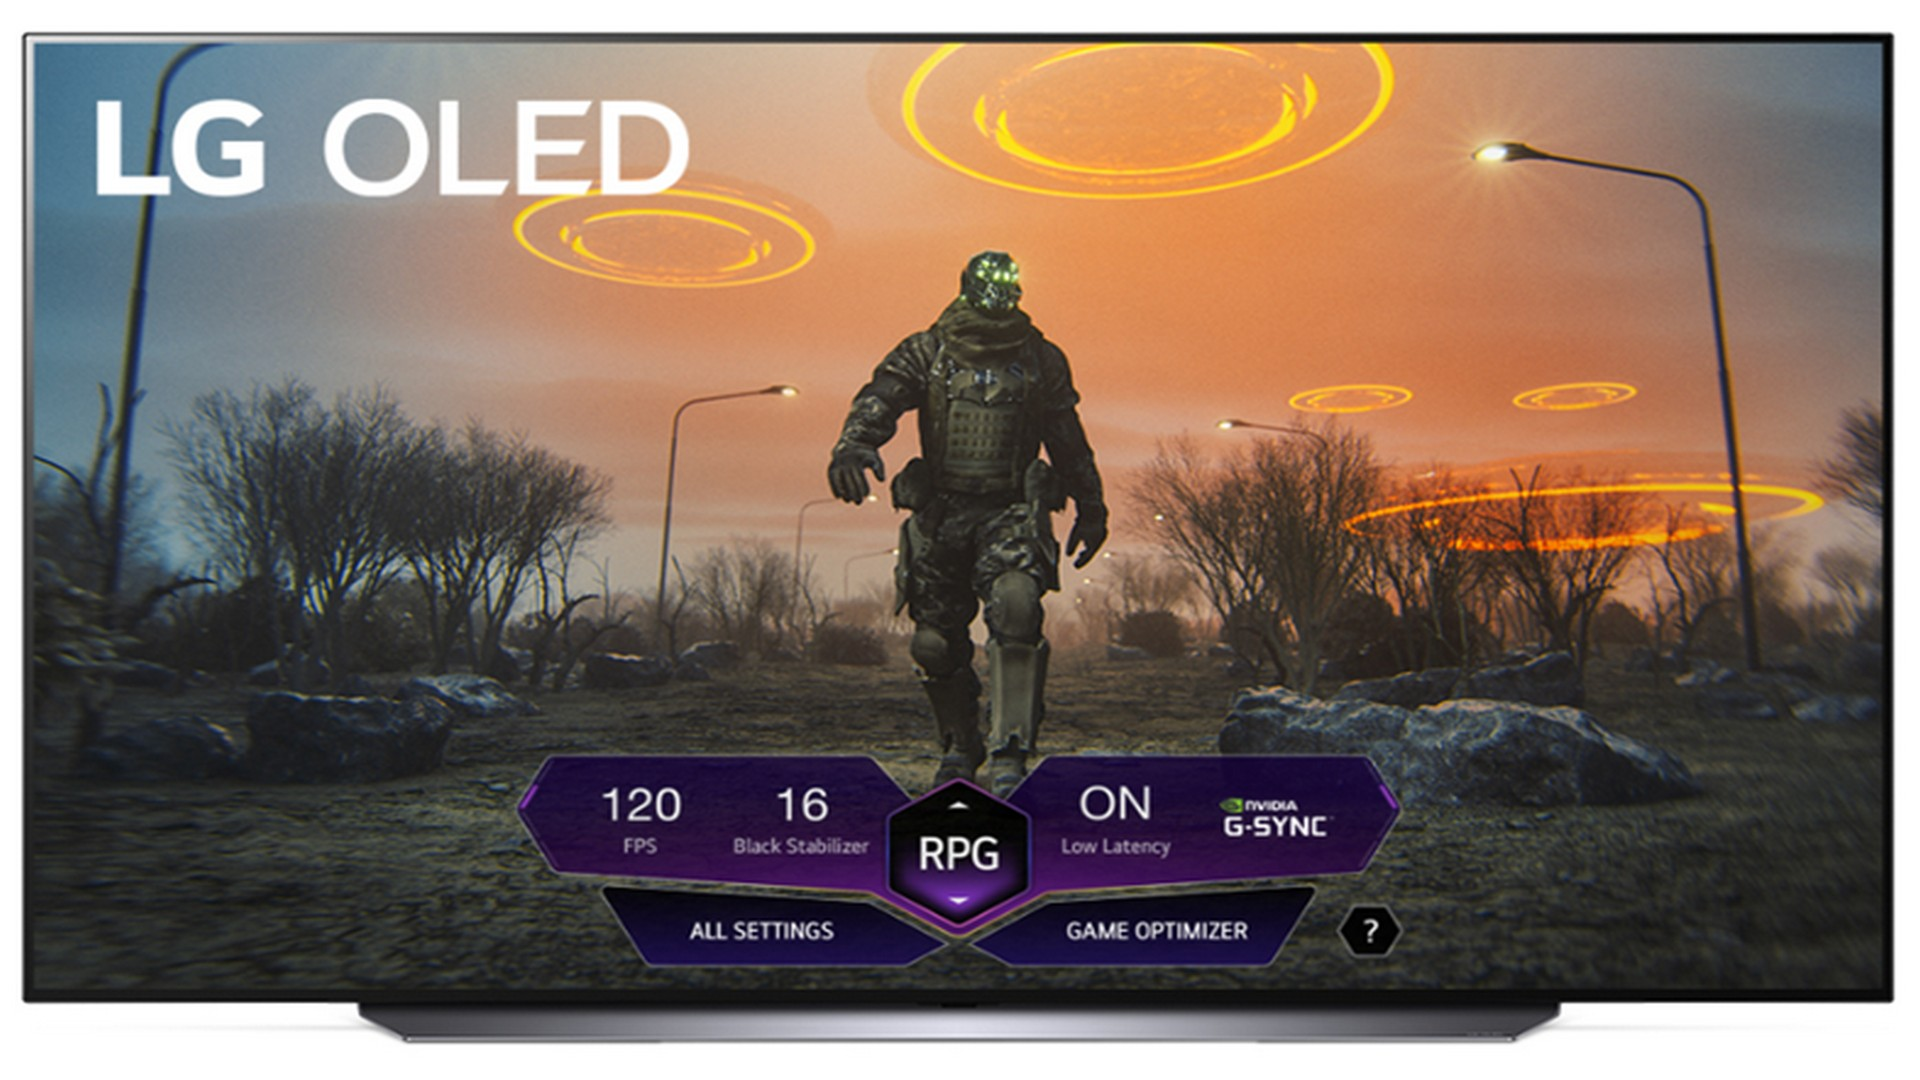 Gaming On LG Premium TVs Reaches New Heights With Latest Dolby Vision Update